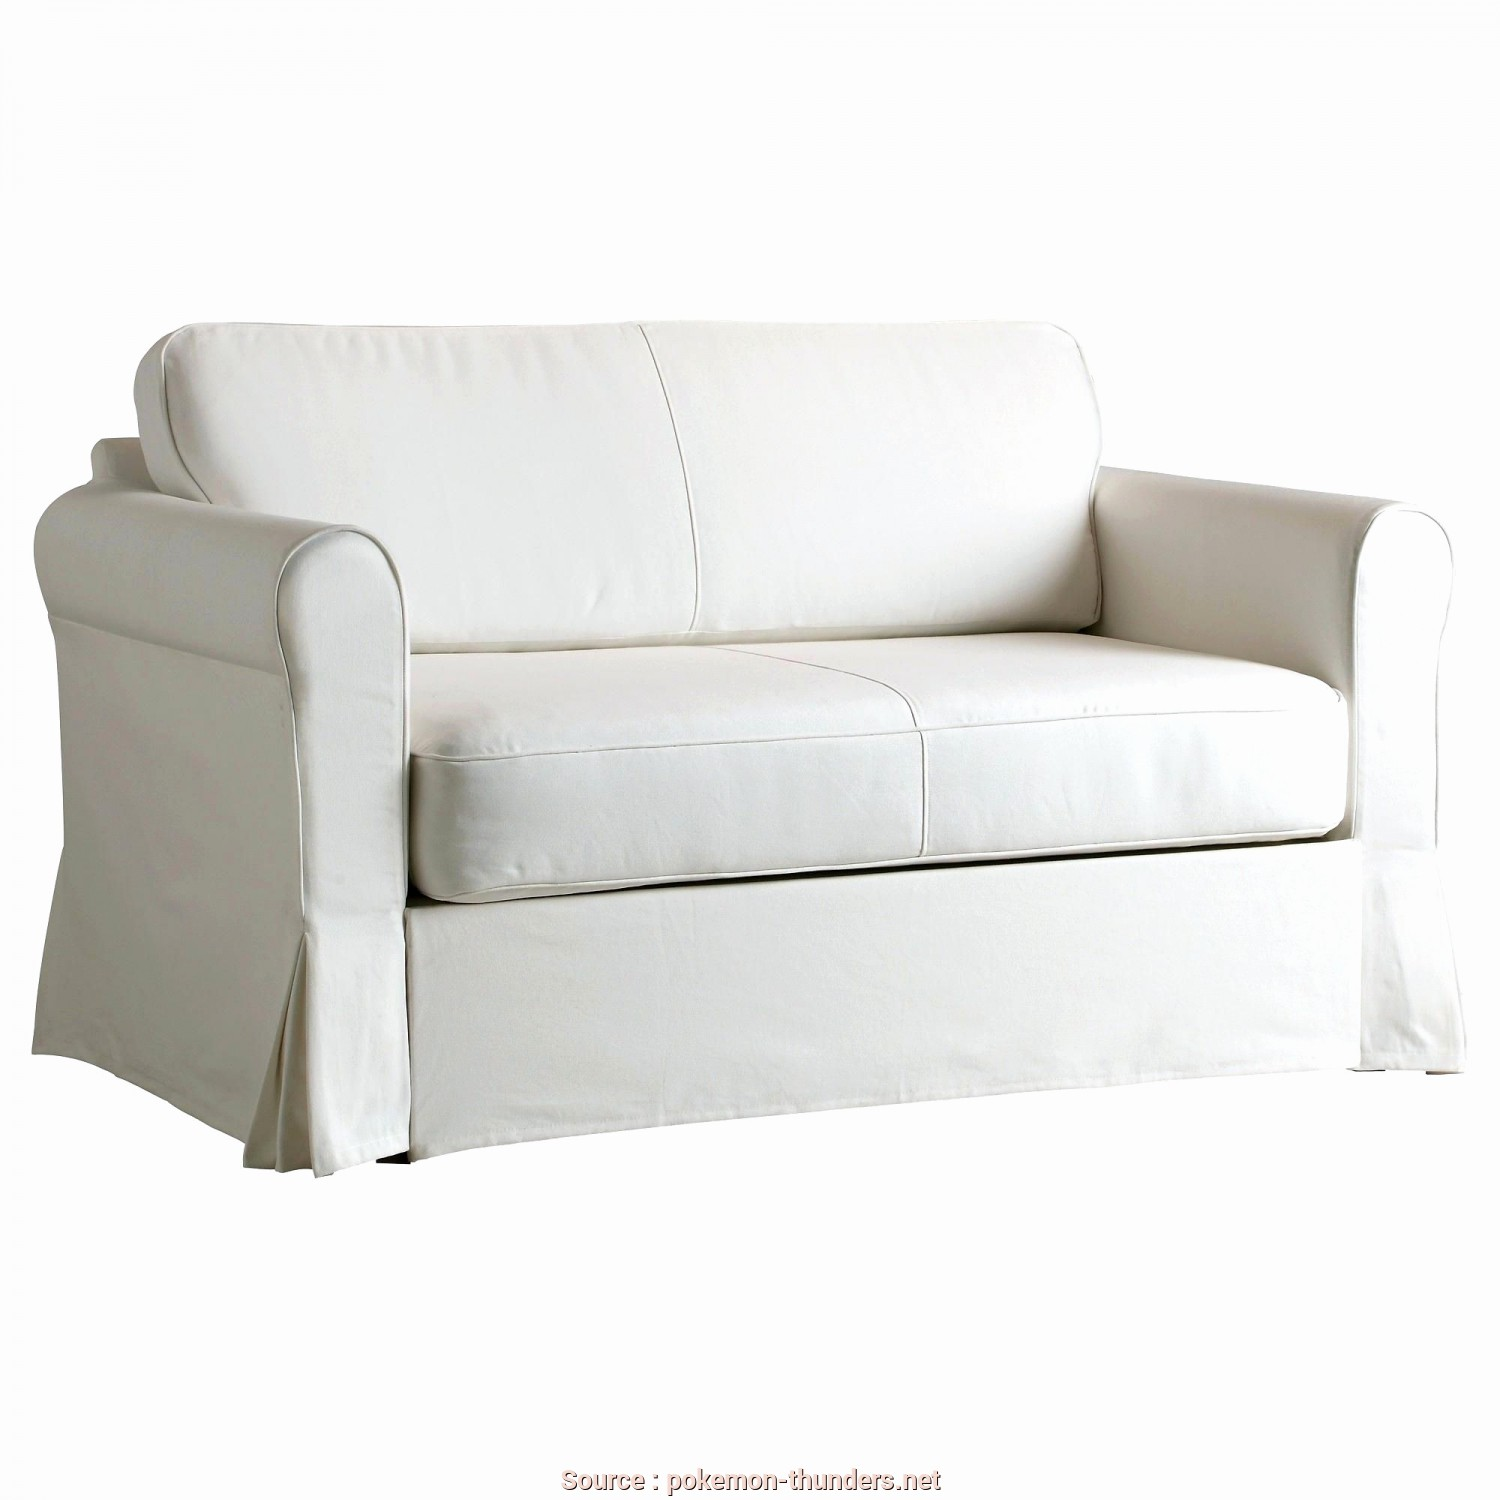 Futon Convertible 2 Places Ikea, Delizioso ... Divan, Ikea Frais Ikea, 2 Places 25 Canap Convertible Bz With Simple